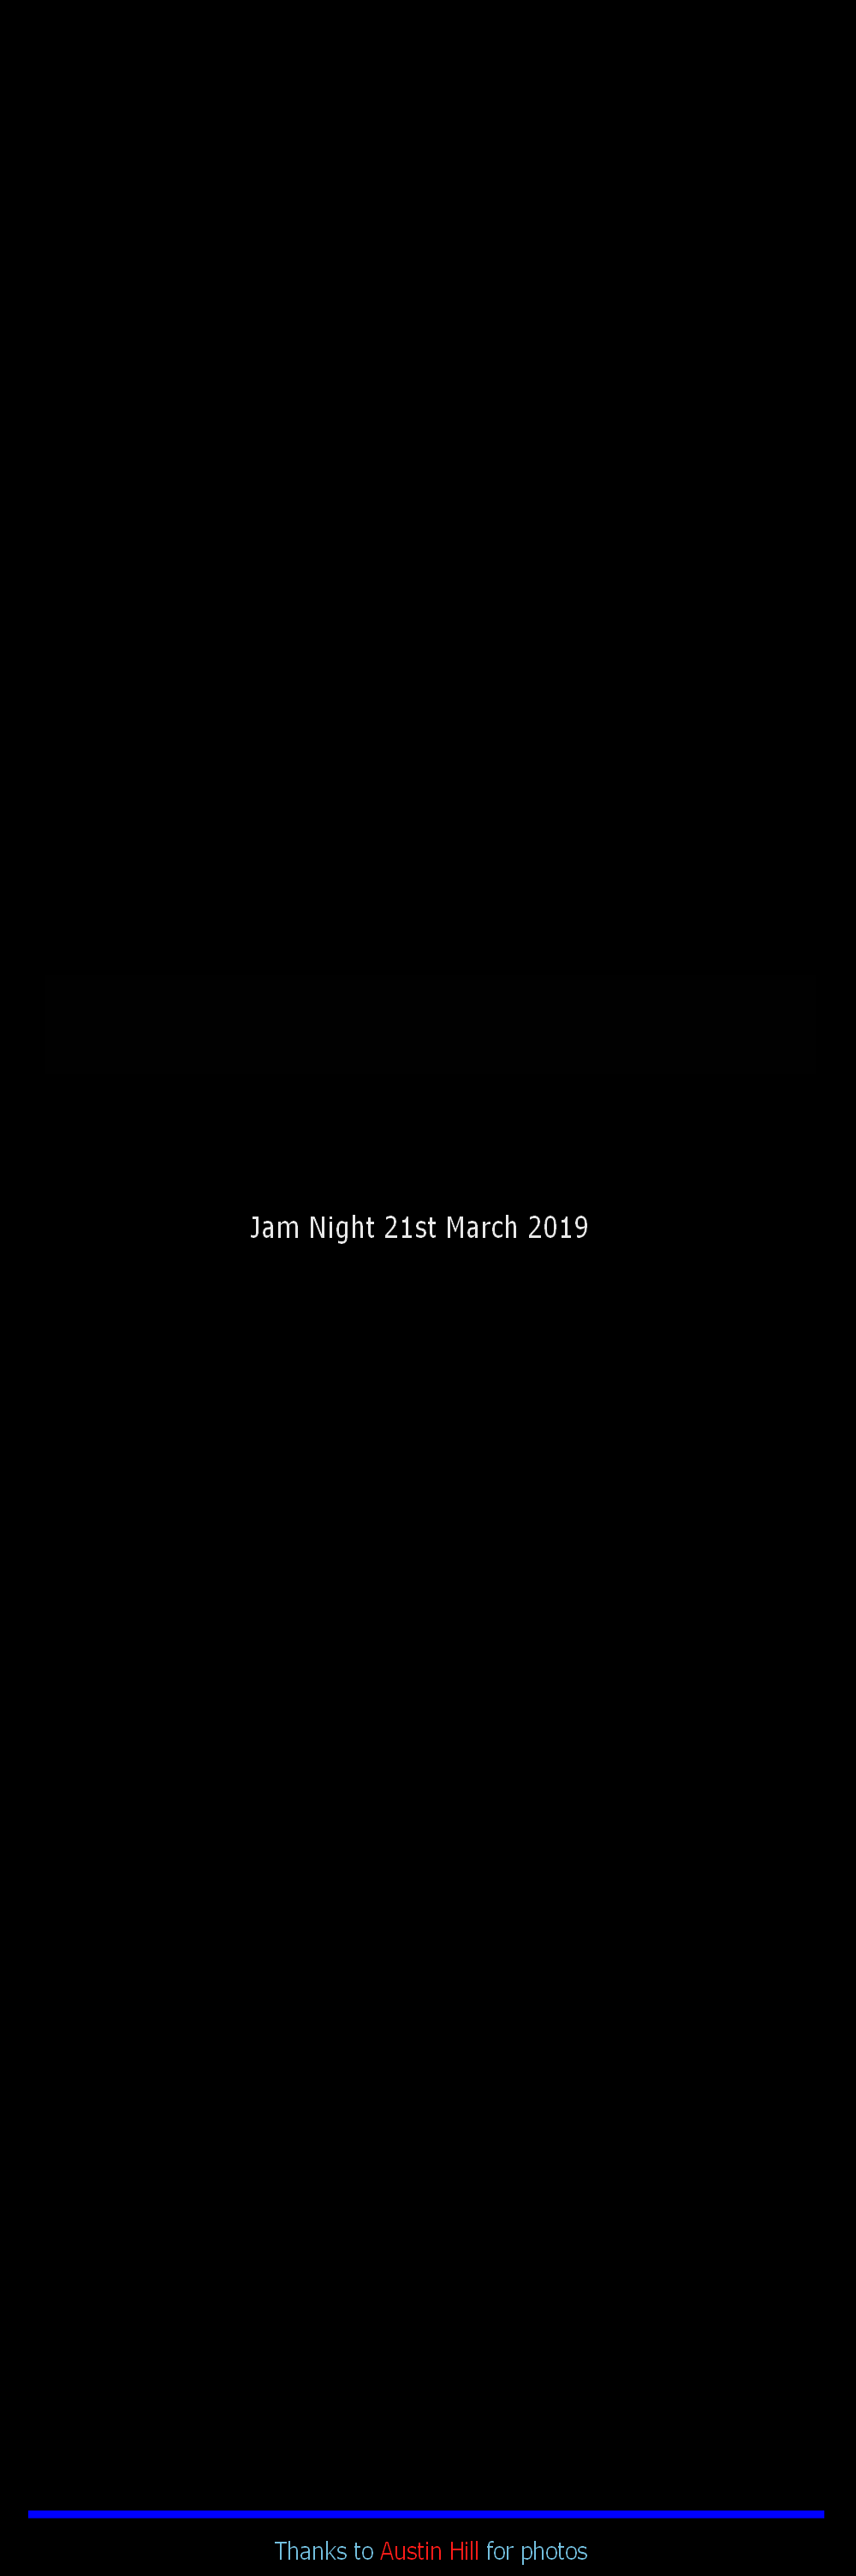 Jam Night 21st March 2019